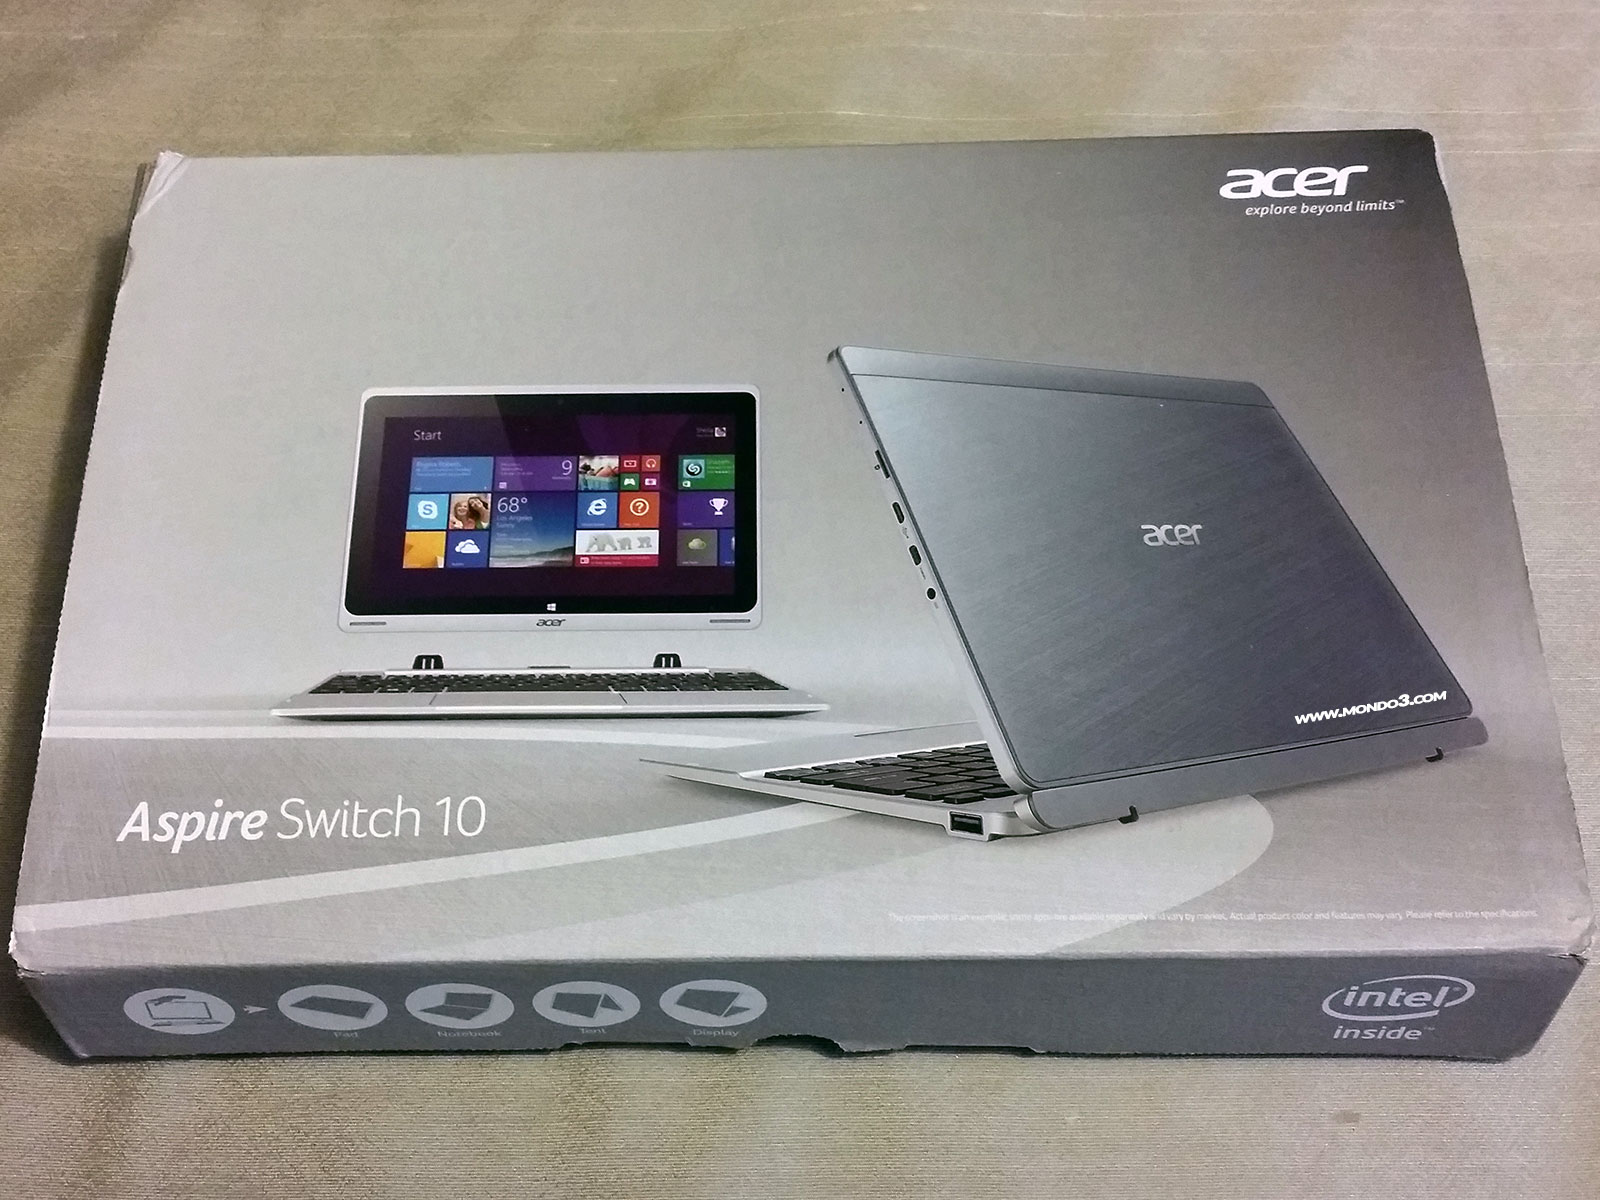 recensione tablet acer aspire switch 10 specifiche e prezzo. Black Bedroom Furniture Sets. Home Design Ideas